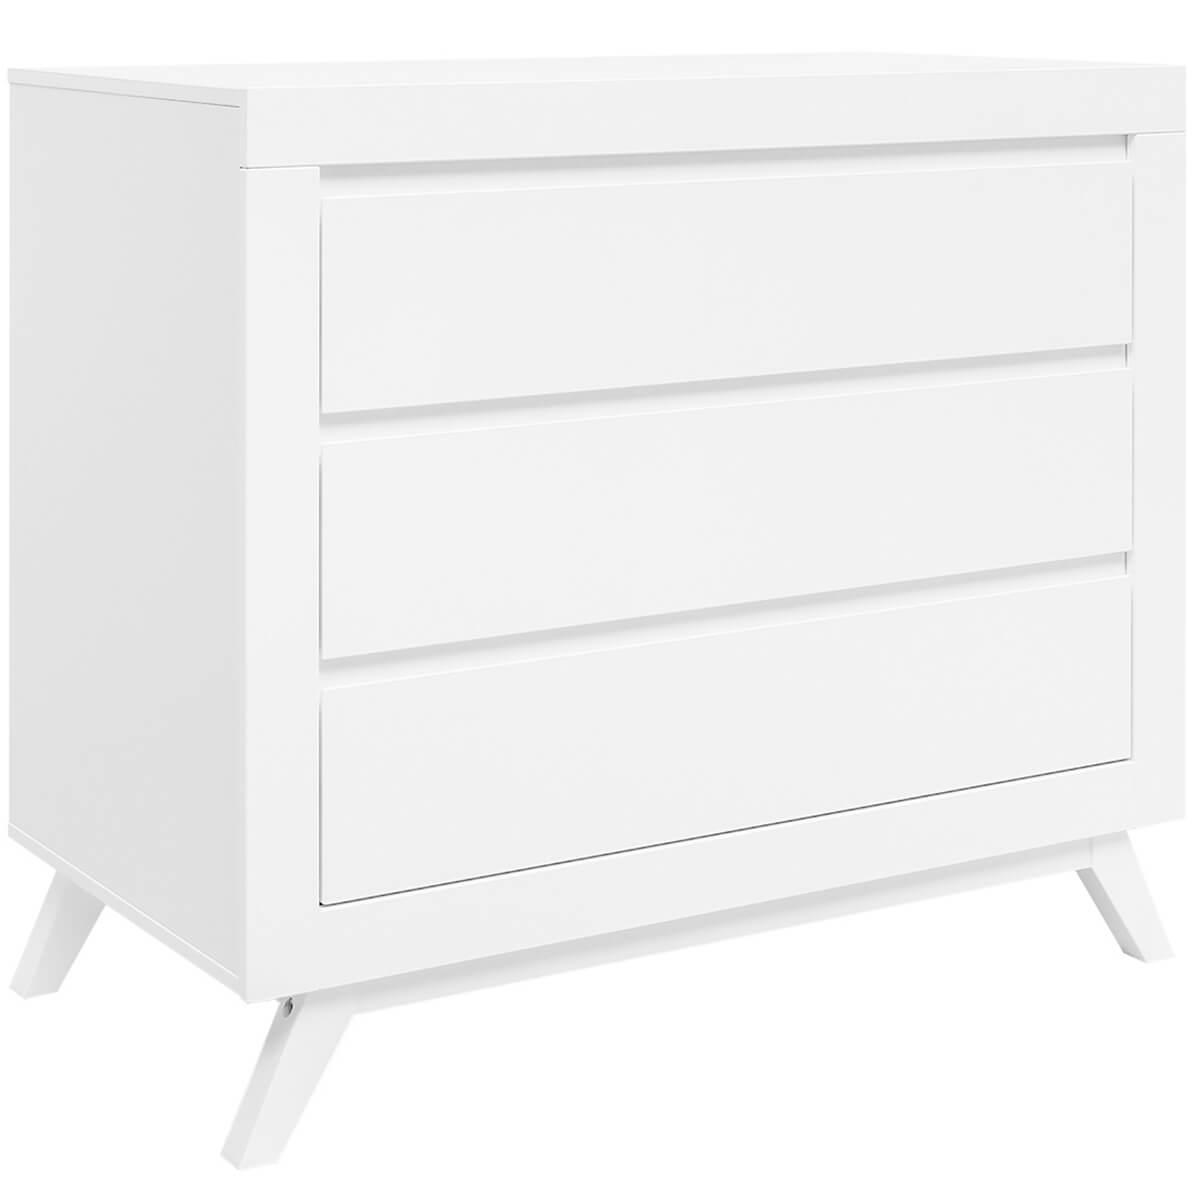 Commode 3 tiroirs ANNE Bopita blanc